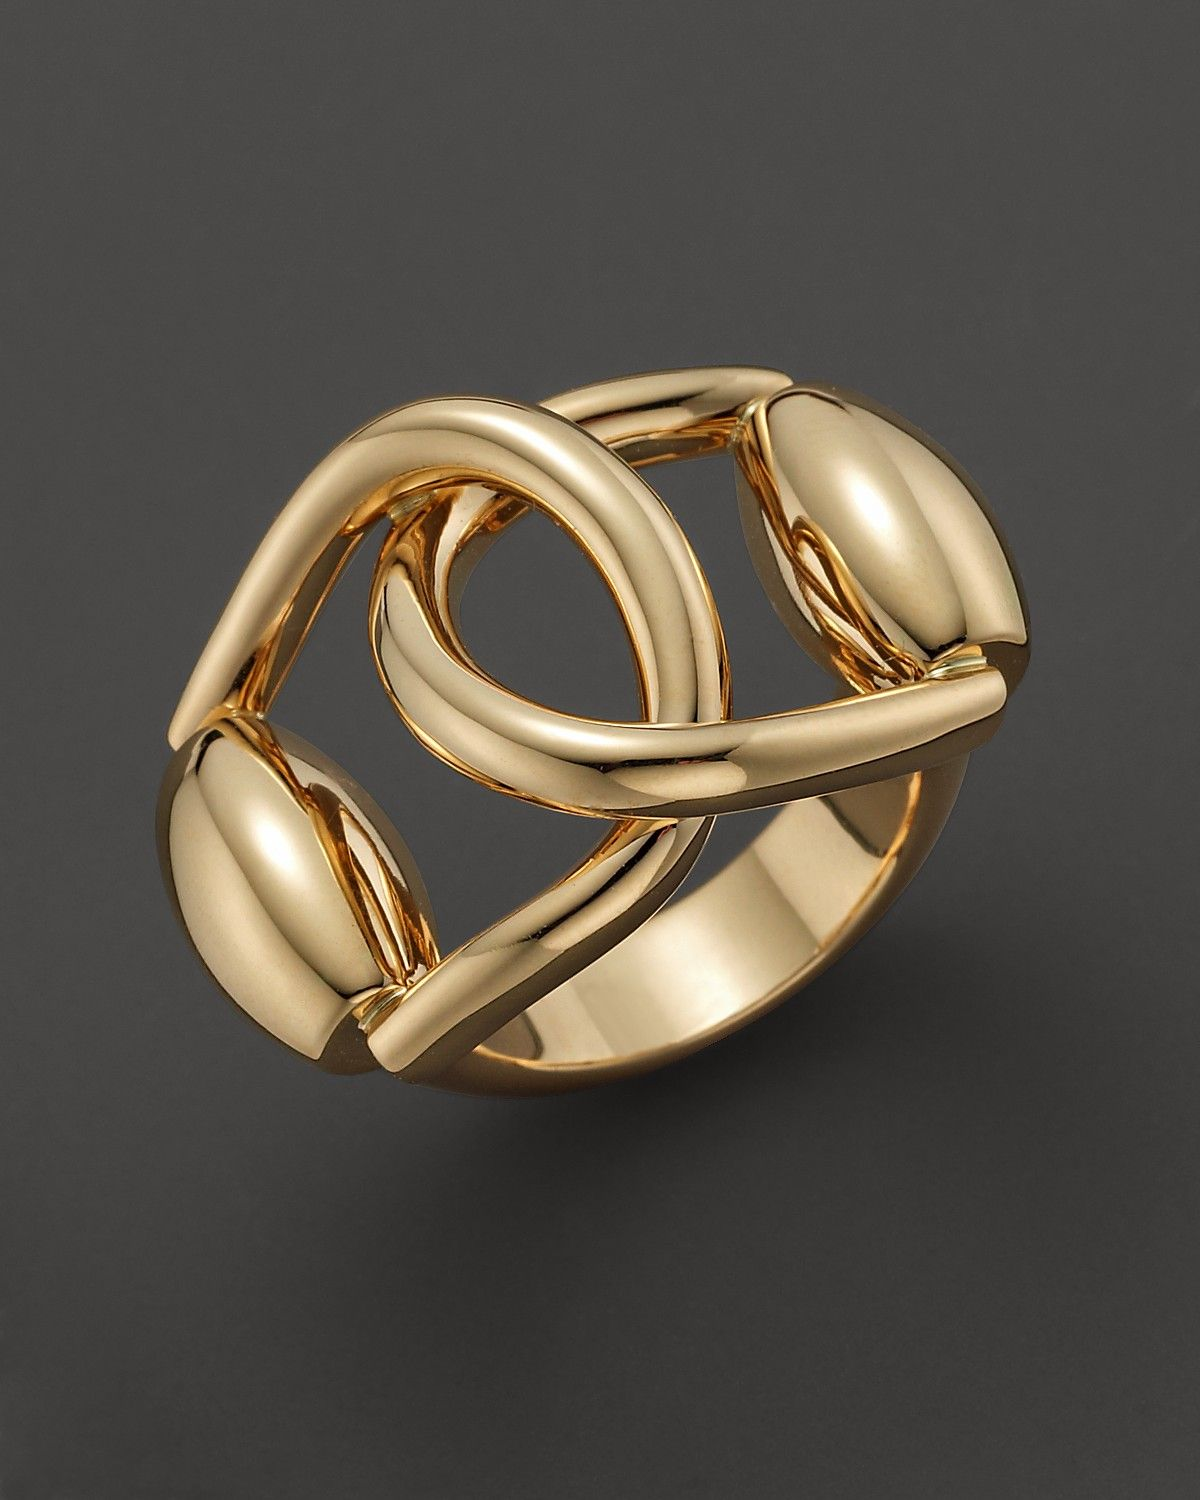 6b7c304eee Gucci 18k yellow gold horsebit double ring | equestrian in 2019 ...